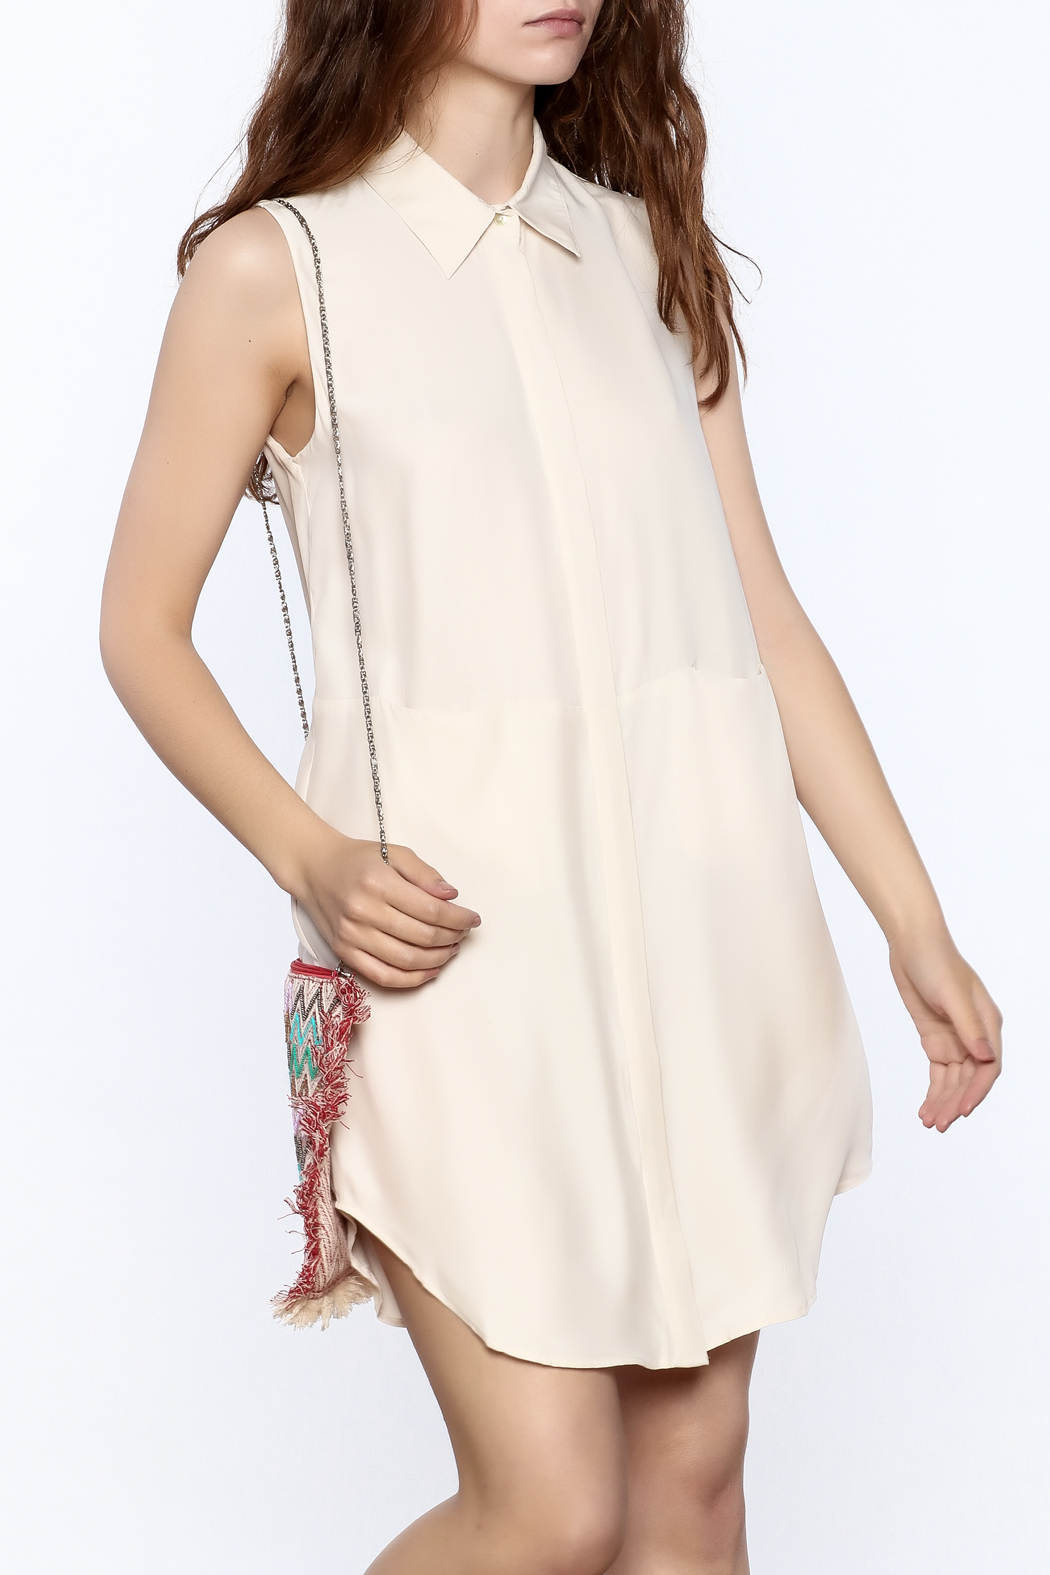 Zoa Beige Silk Dress - Main Image